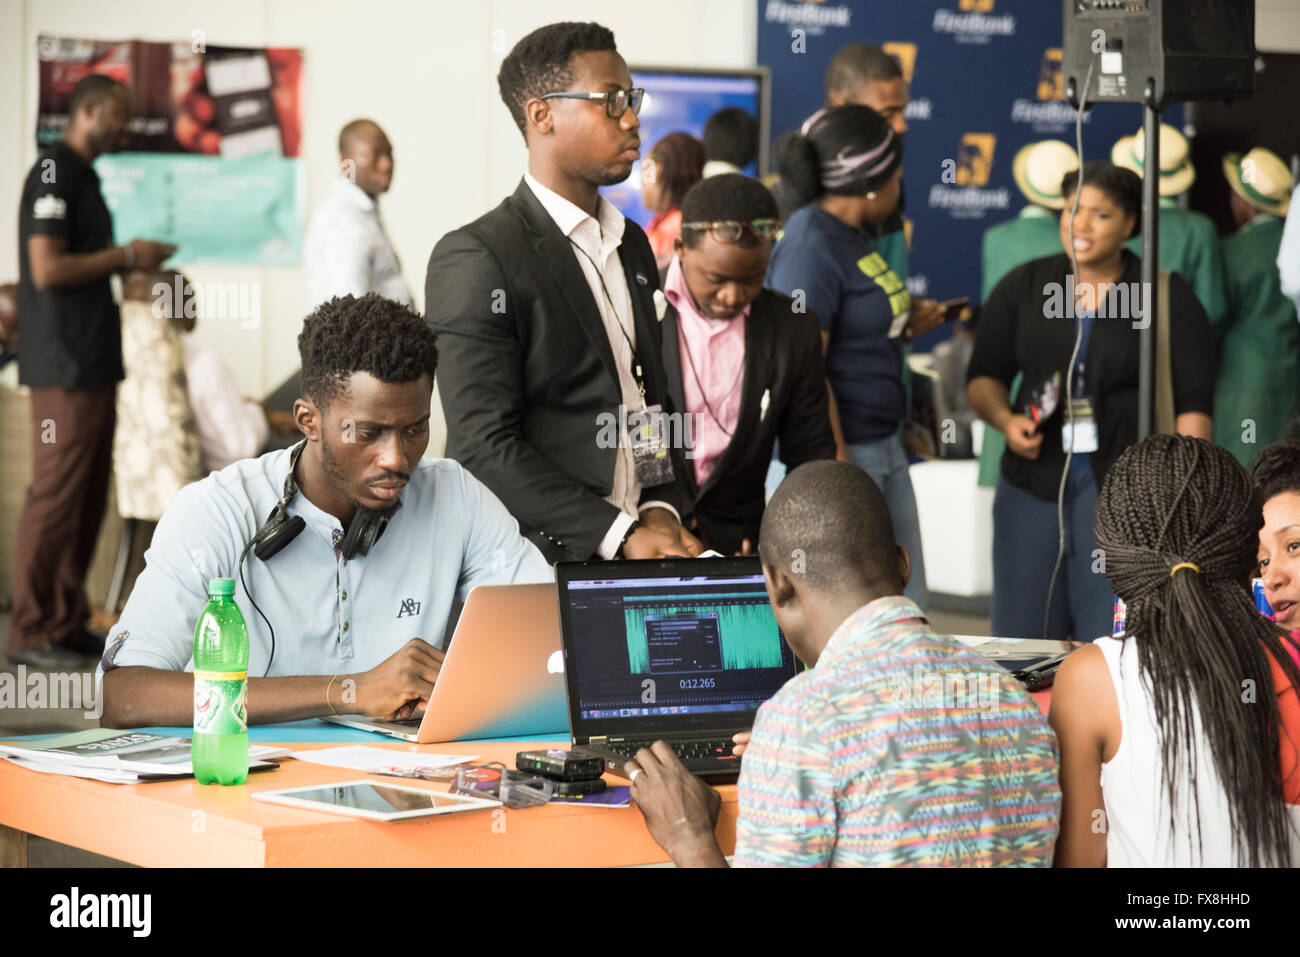 Young Nigerian people using technology at Social Media Week business conference in Lagos Nigeria - Stock Image